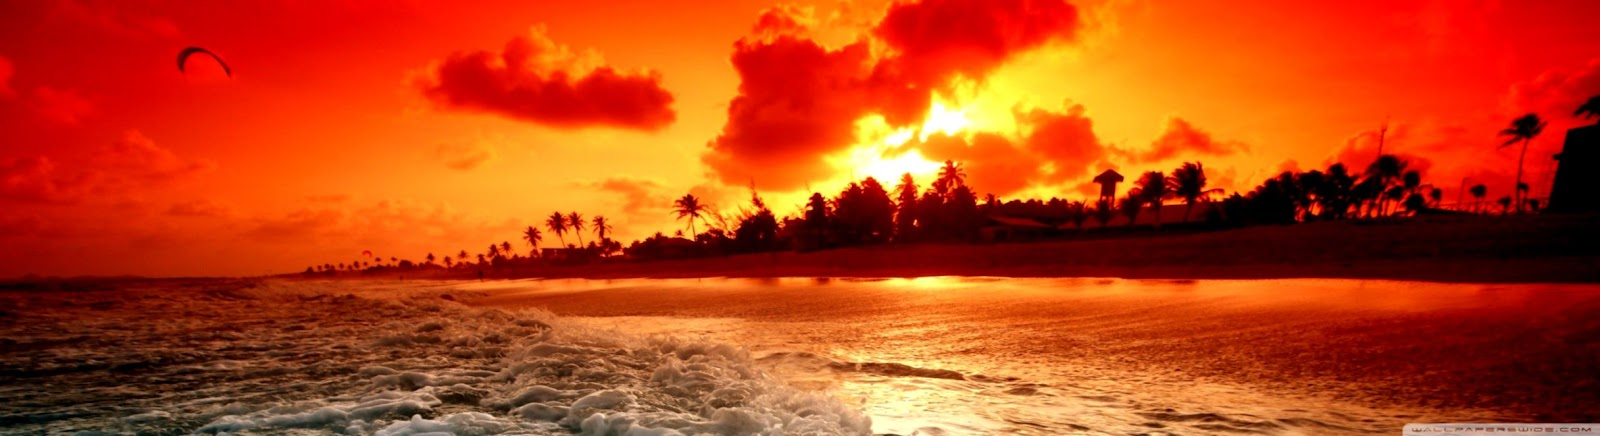 Tropical Beach Sunset Hd Wallpaper Desktop Wallpapers Names